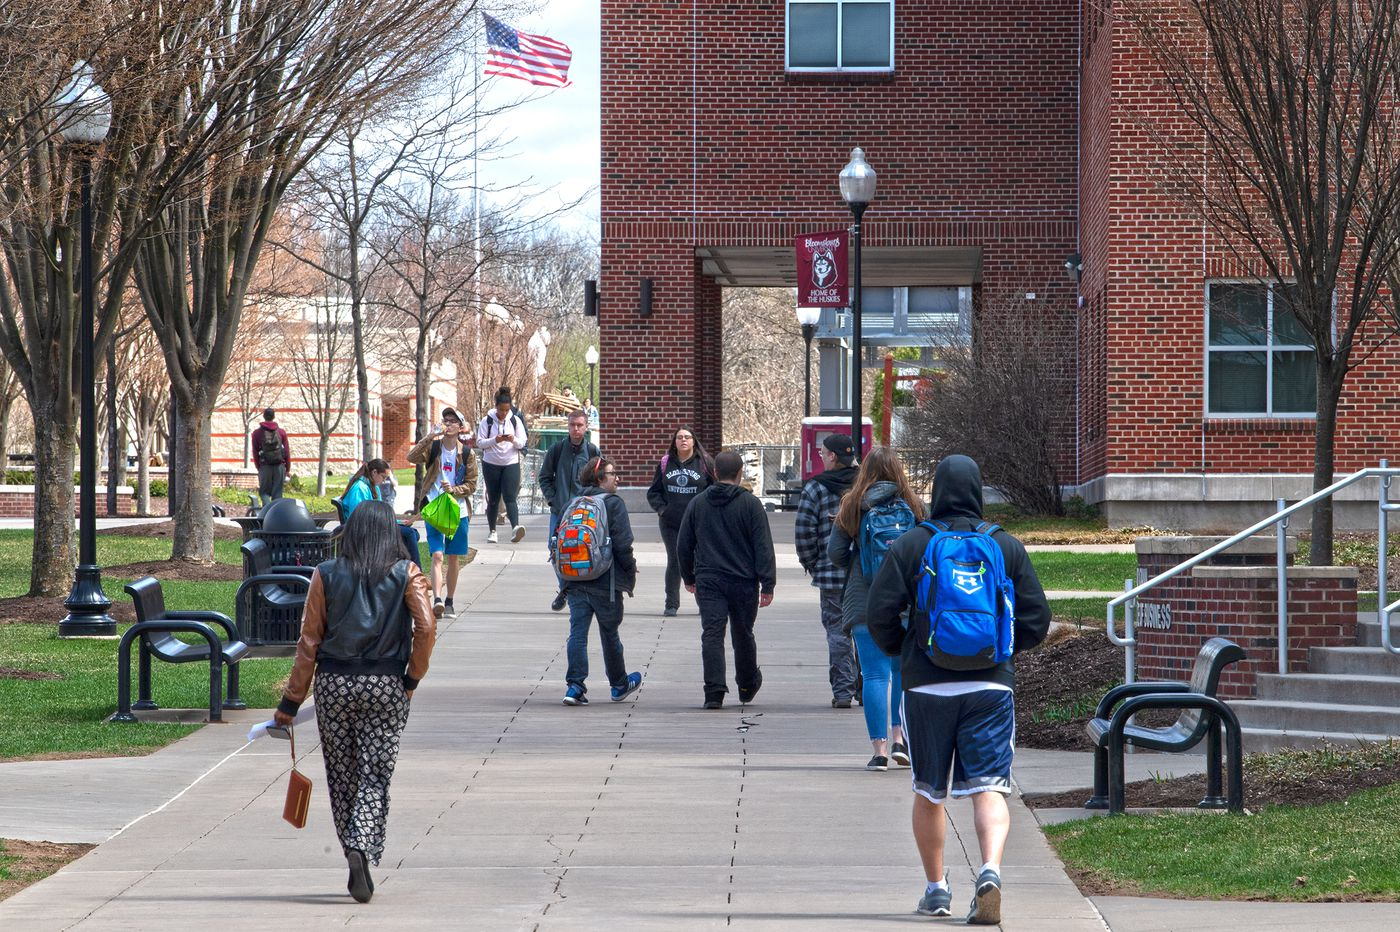 Report: College enrollment down nationwide; Pa. decline larger than the average